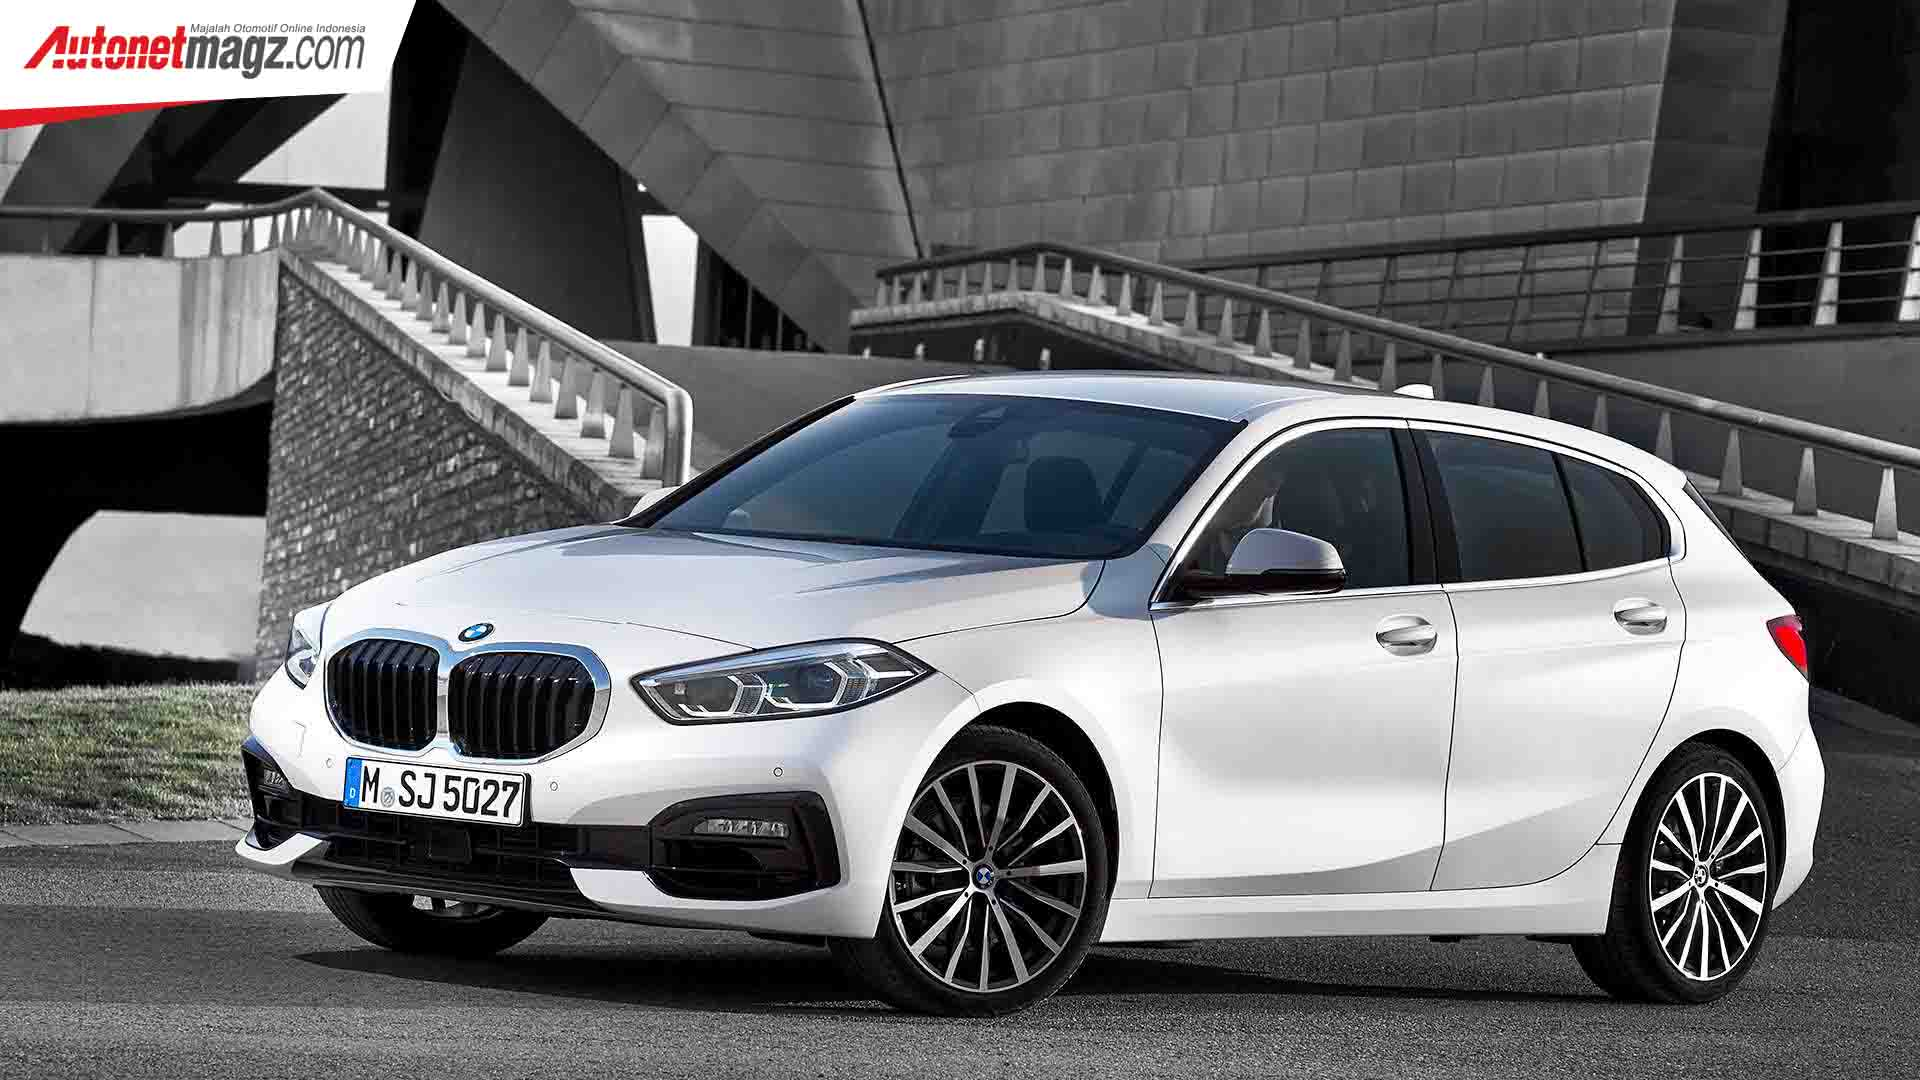 Bmw 1 Series >> Bmw 1 Series 2020 Samping Autonetmagz Review Mobil Dan